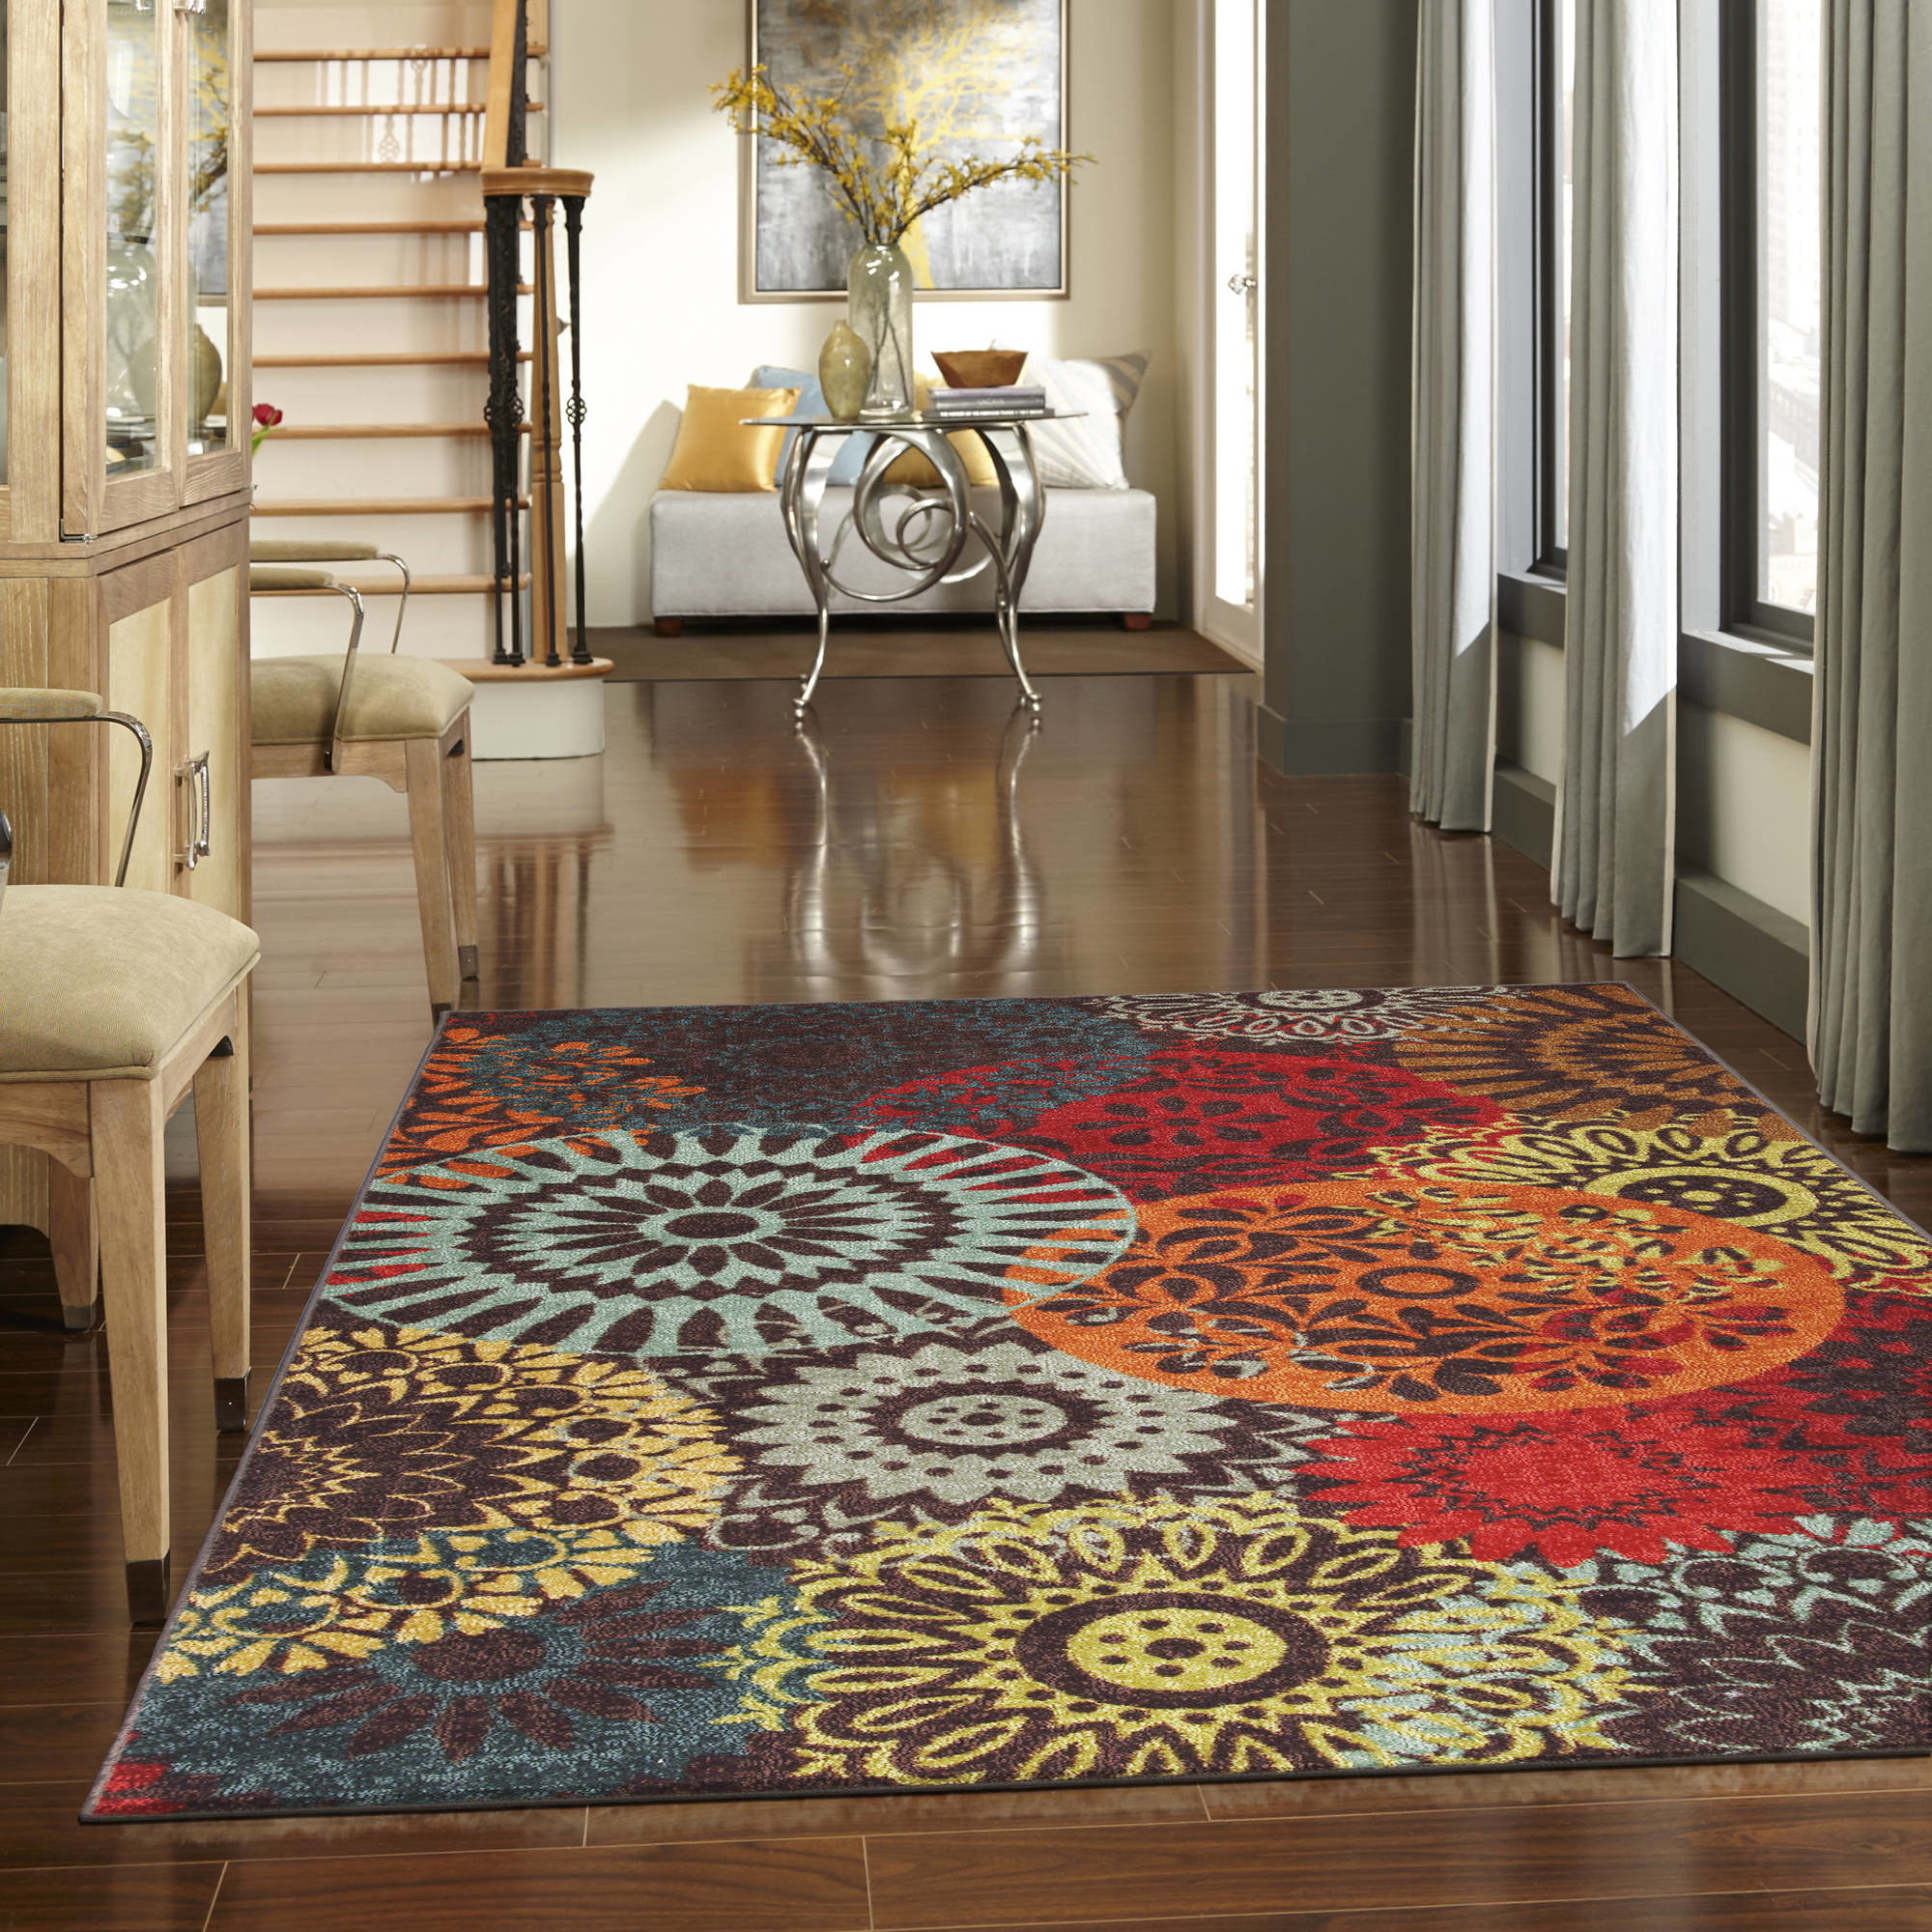 brown area rug with colorful circular designs